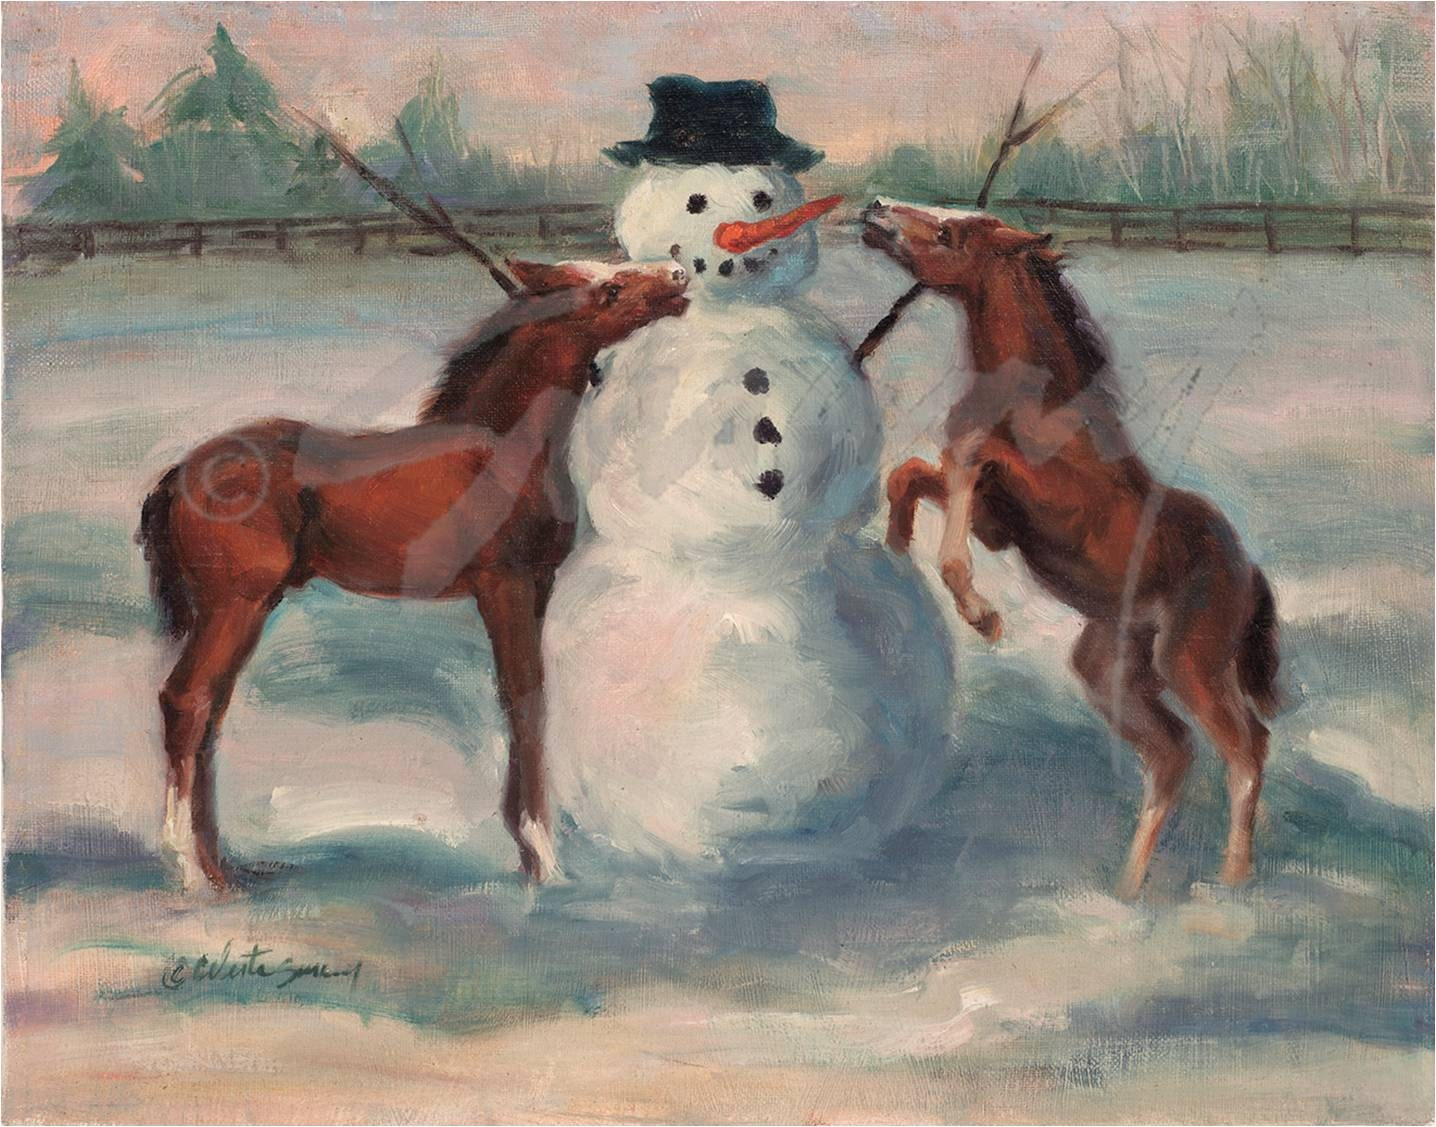 Christmas Card of Snowman and Horses Winter | Etsy